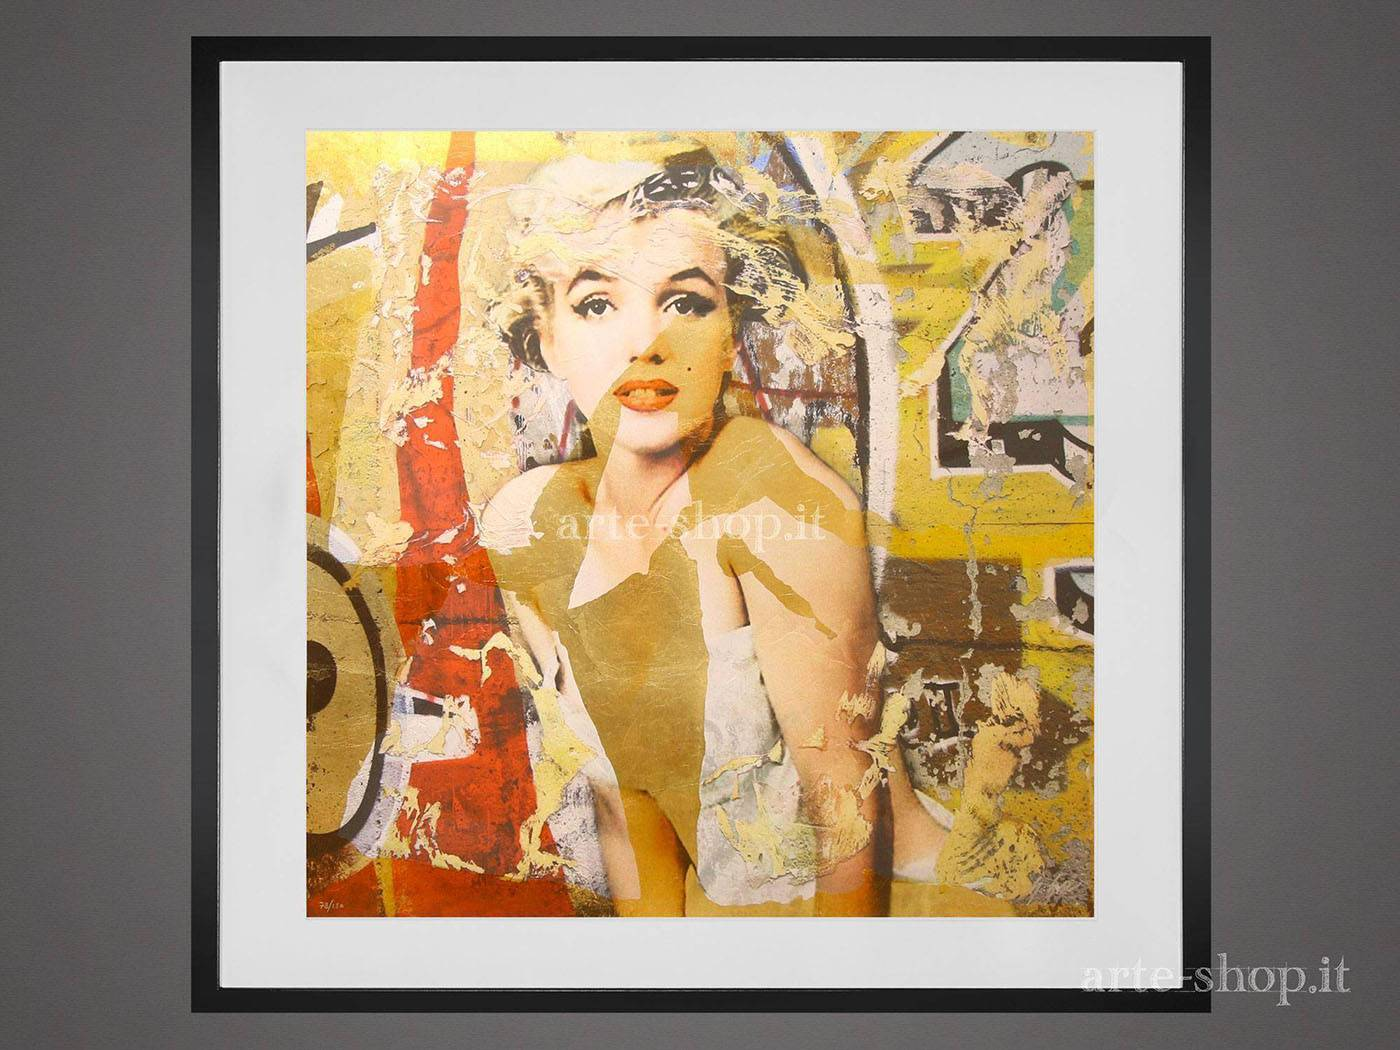 Serigrafia Giuliano Grittini - Marilyn 1